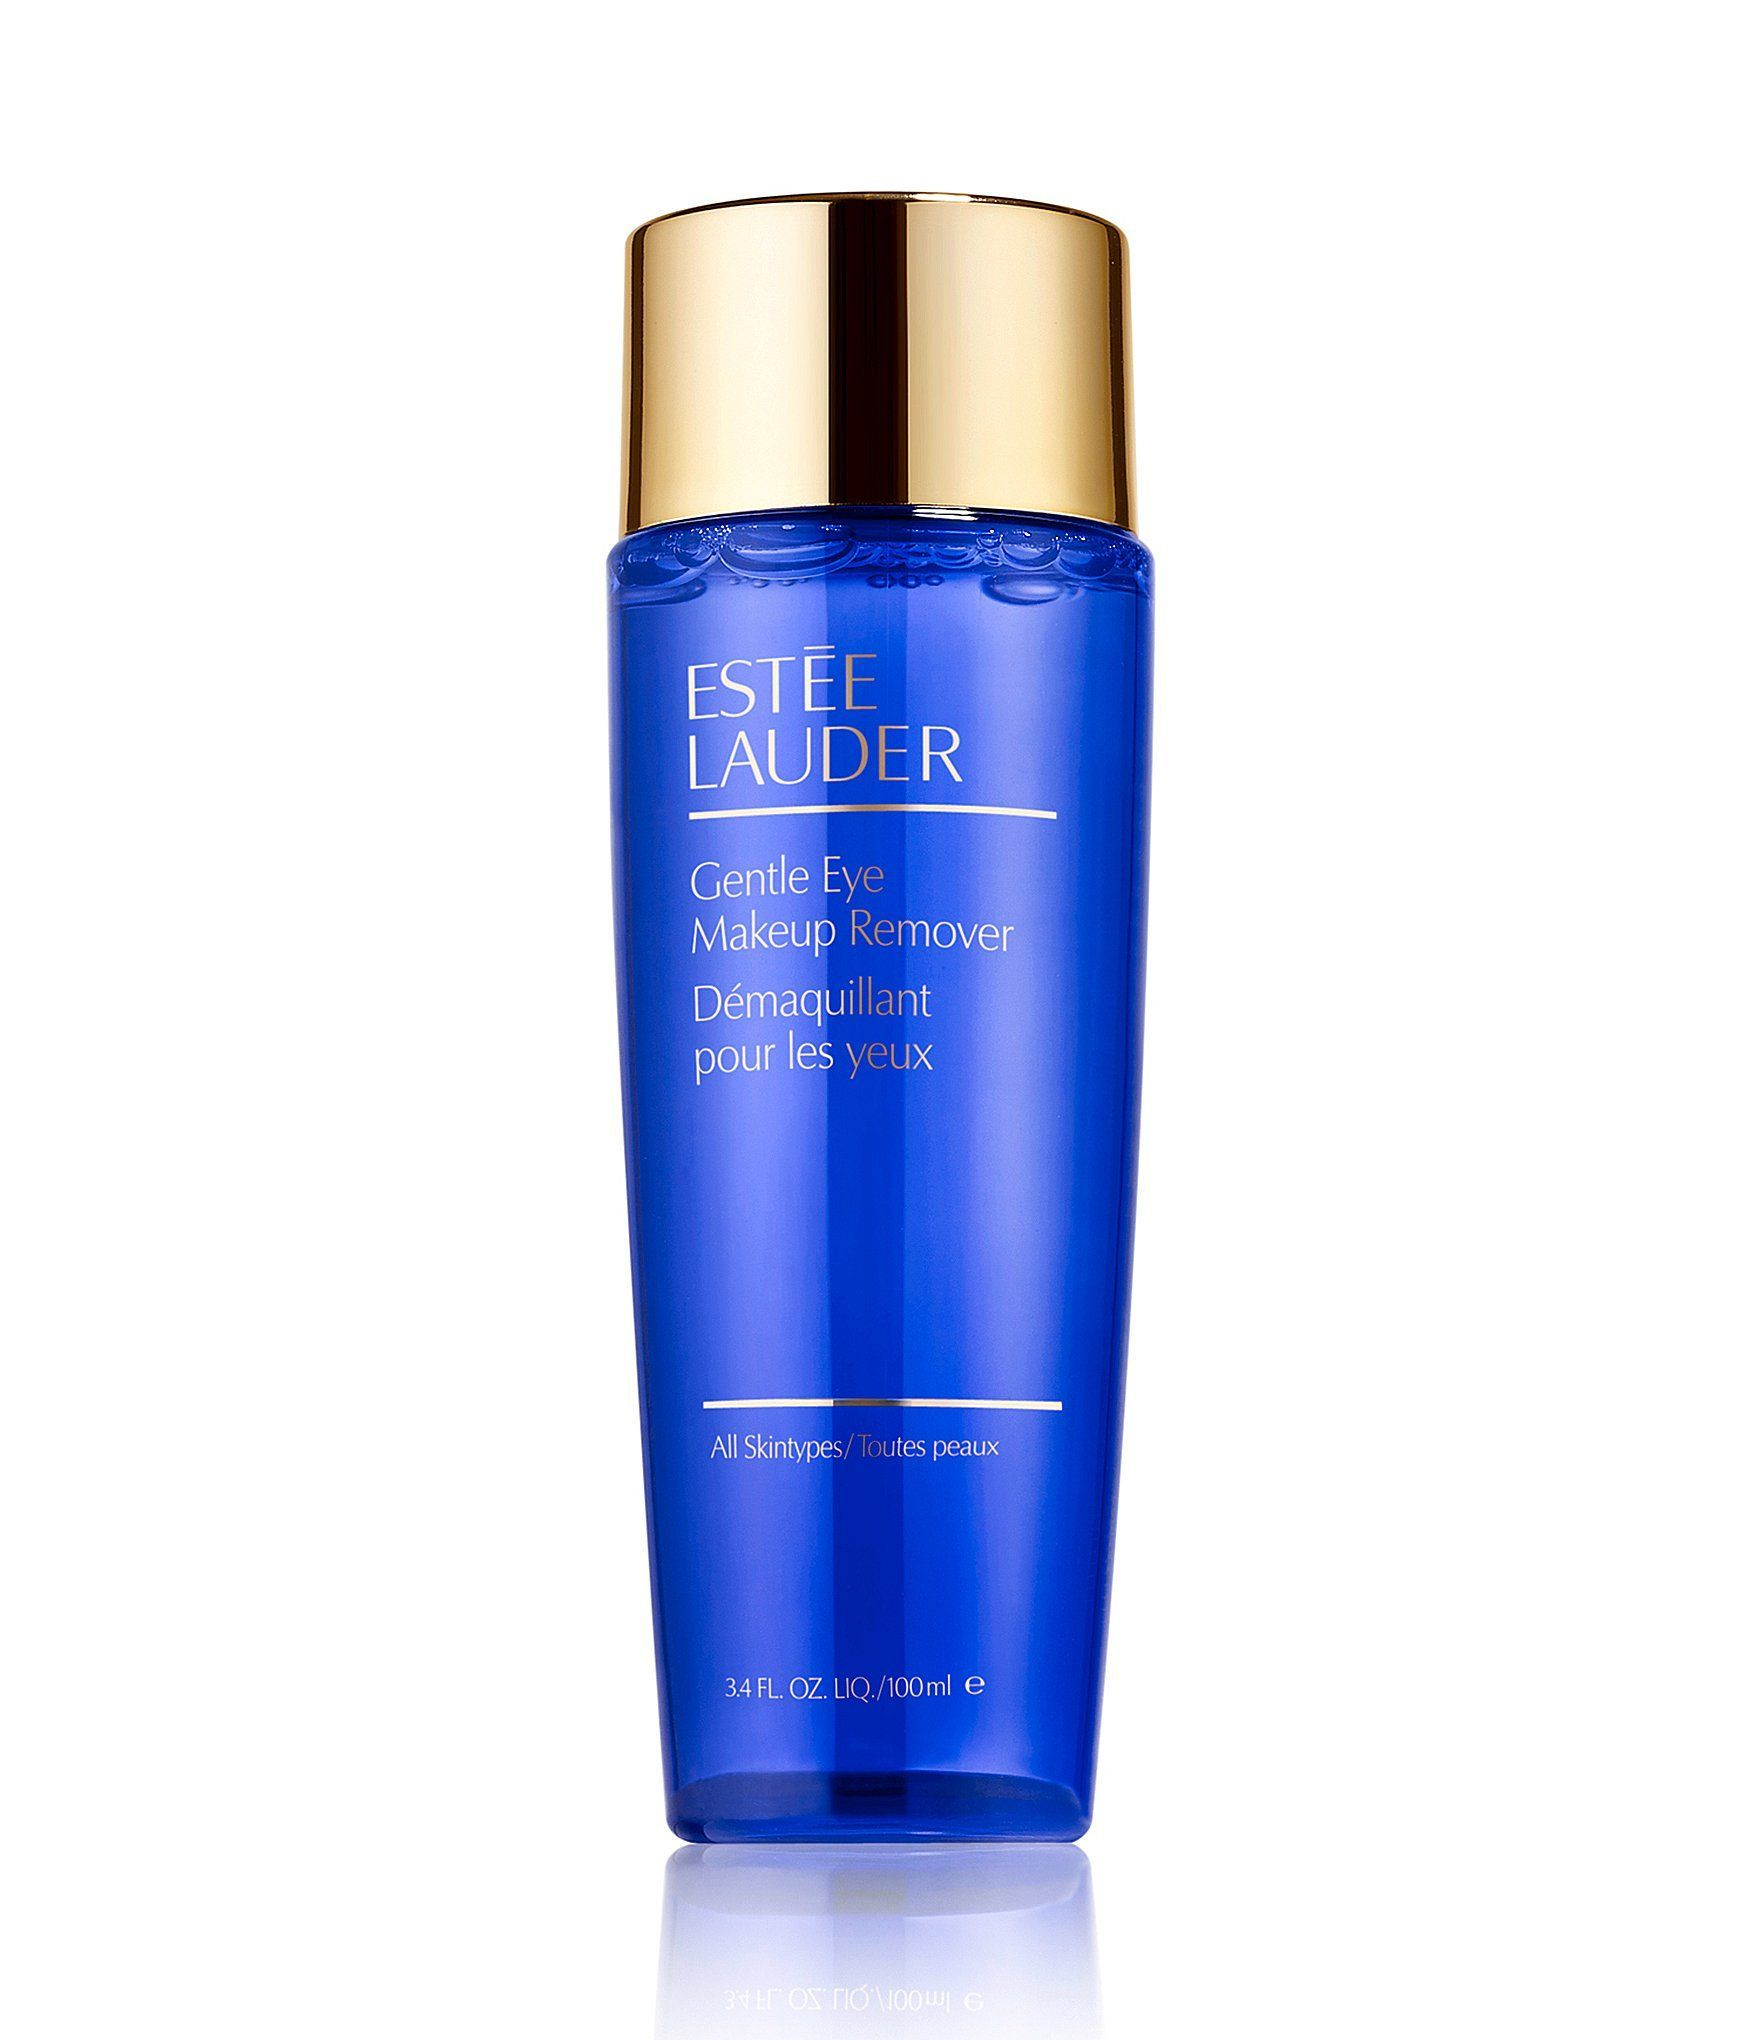 Estee Lauder Gentle Eye Makeup Remover 3.4 oz. in 2020